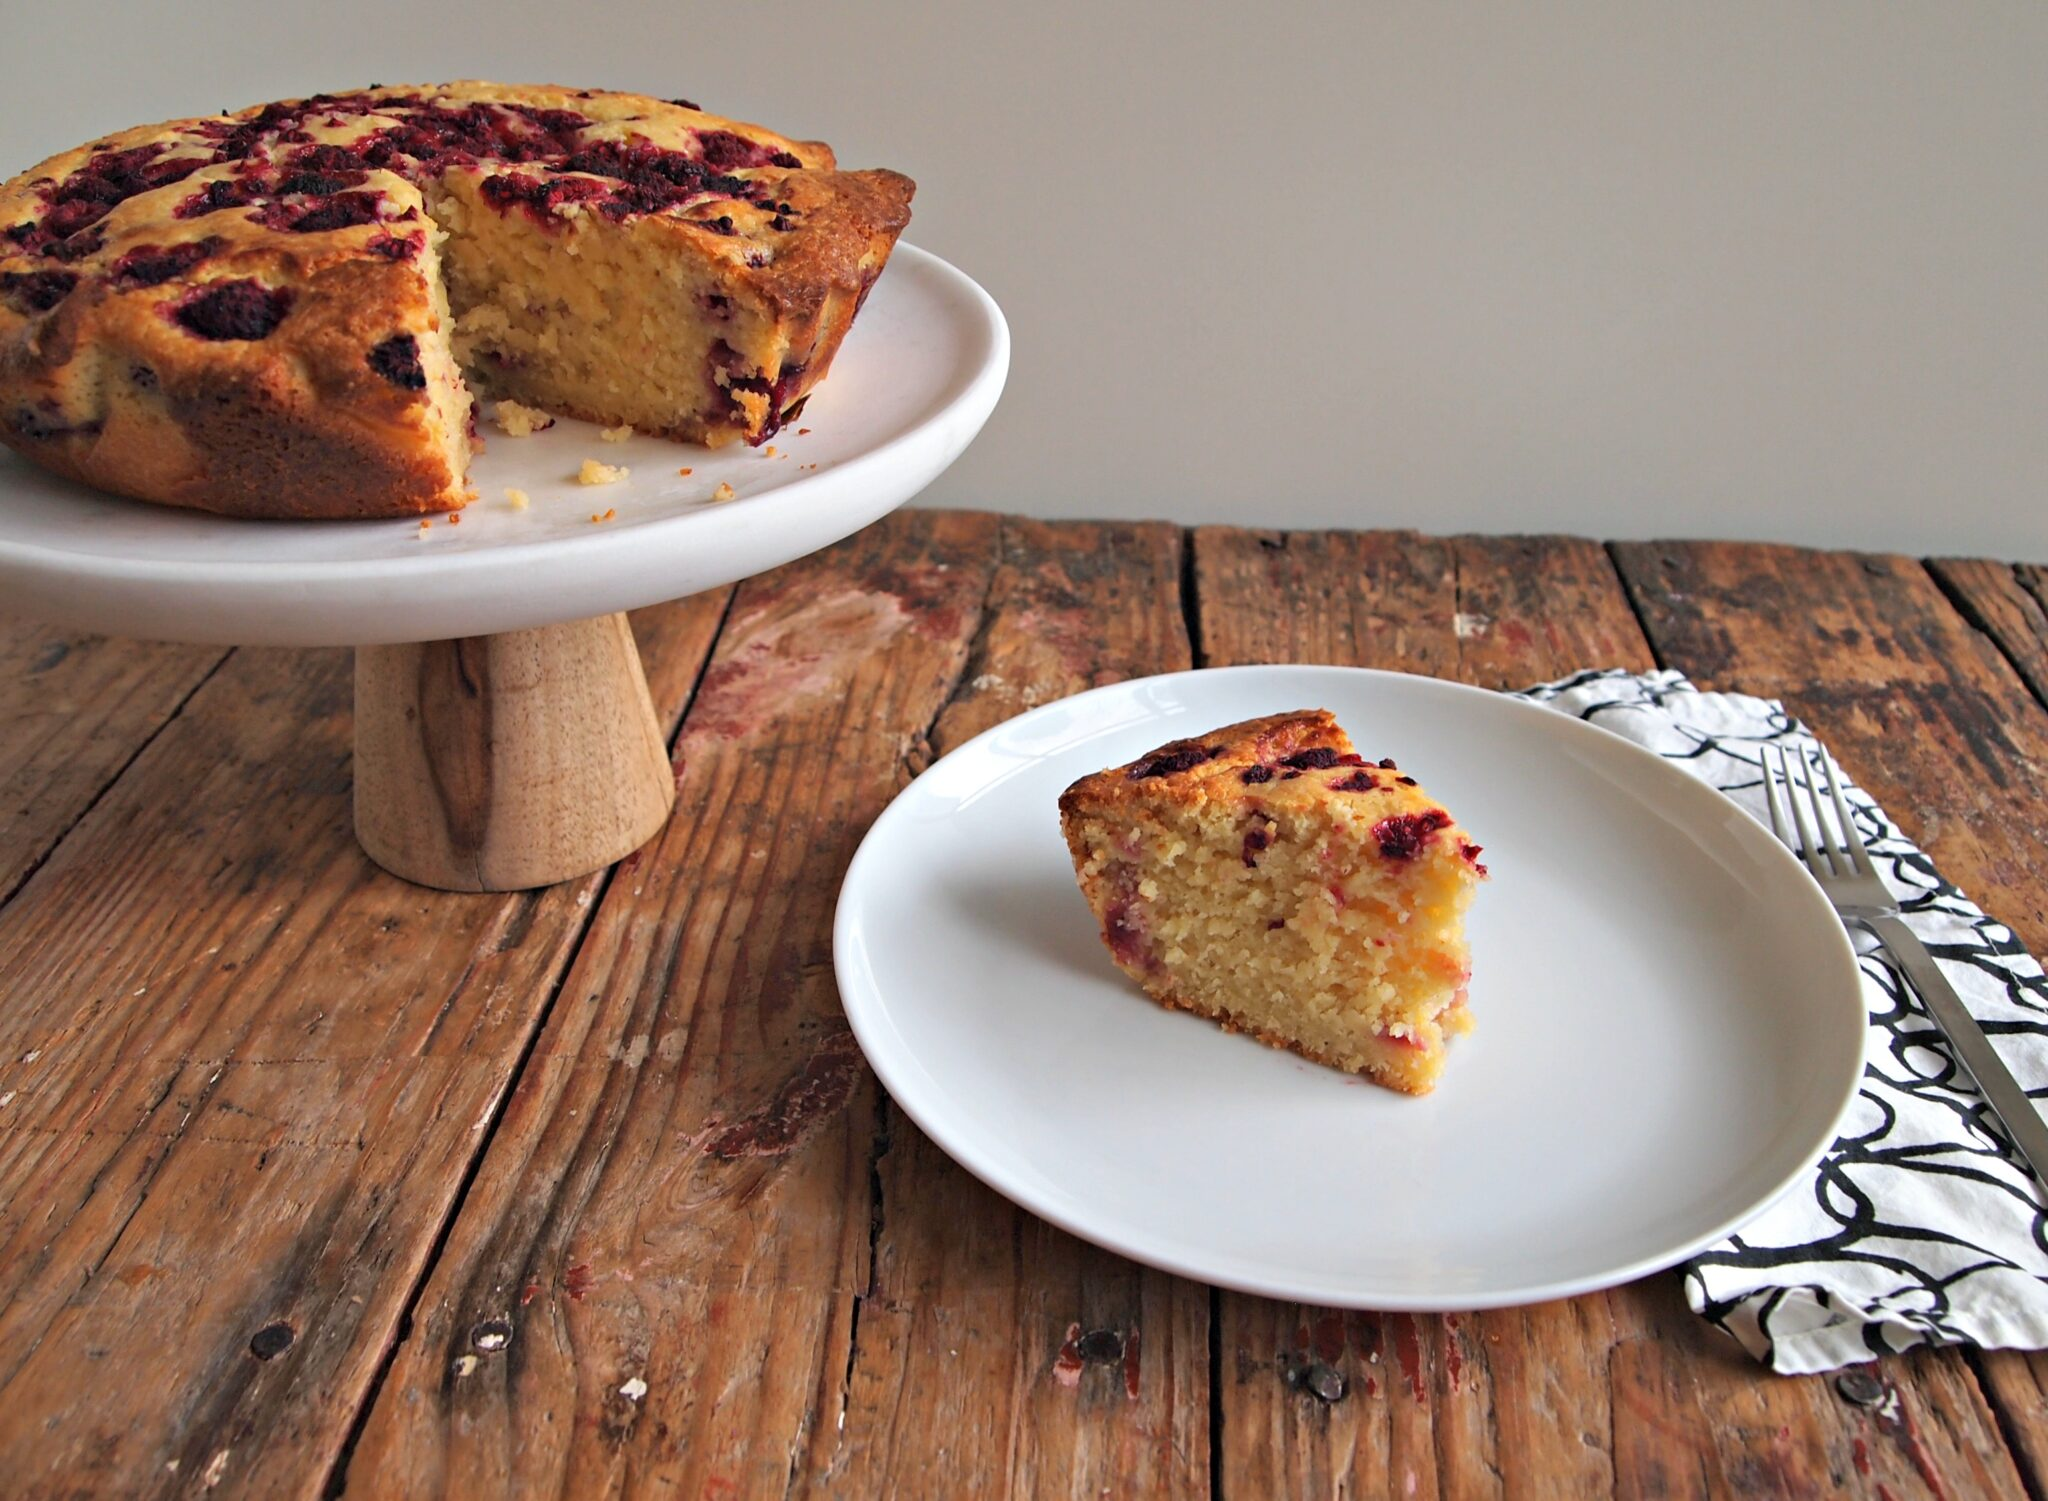 My Kitchen Love Blog - Lemon Raspberry Ricotta Cake